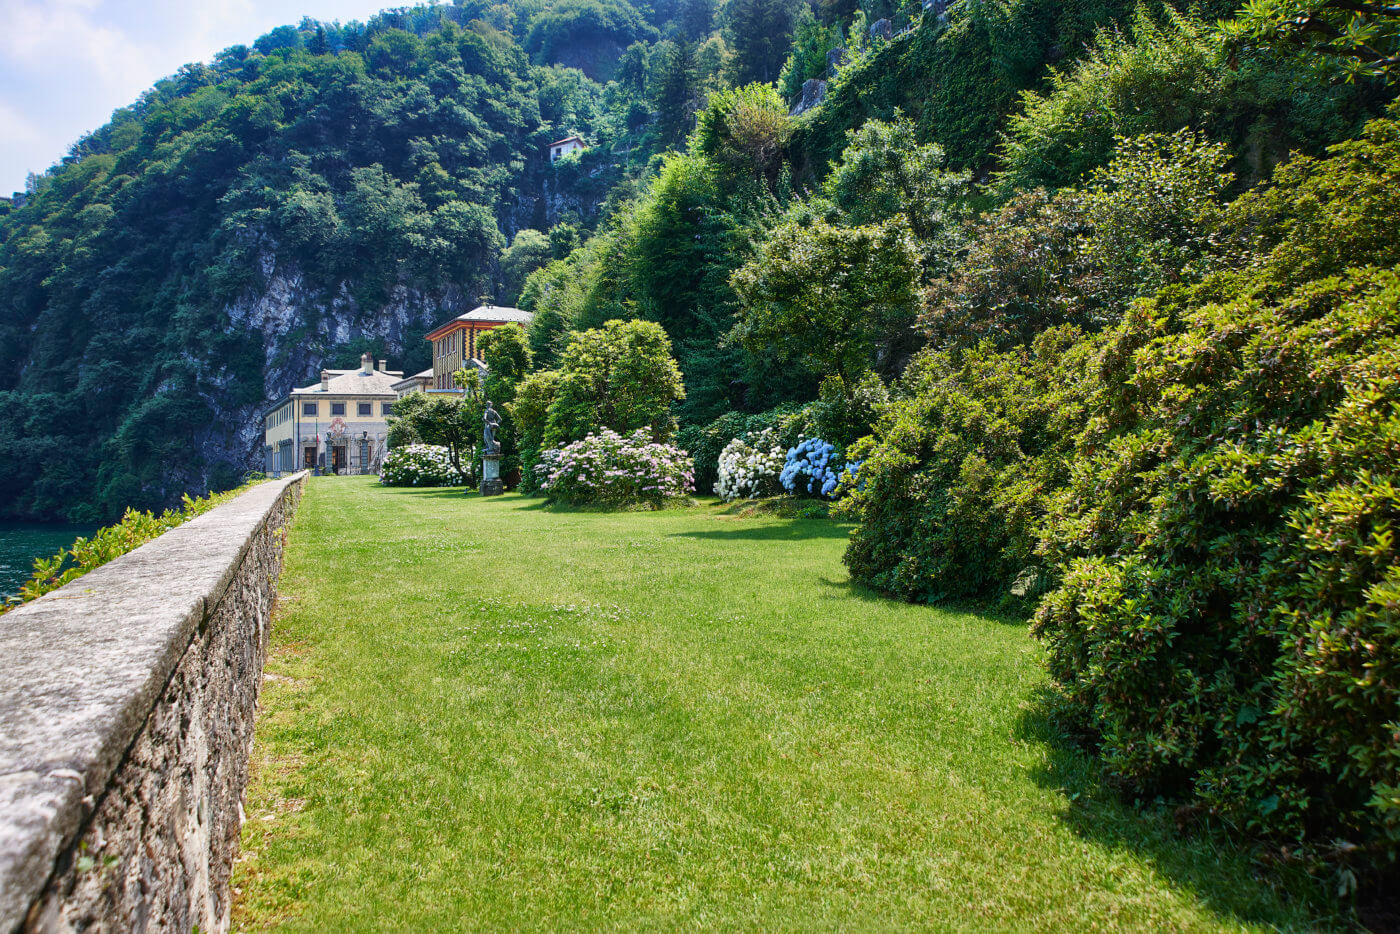 wedding location in lake como LS-F2016-06-PT0053-1-1400x934